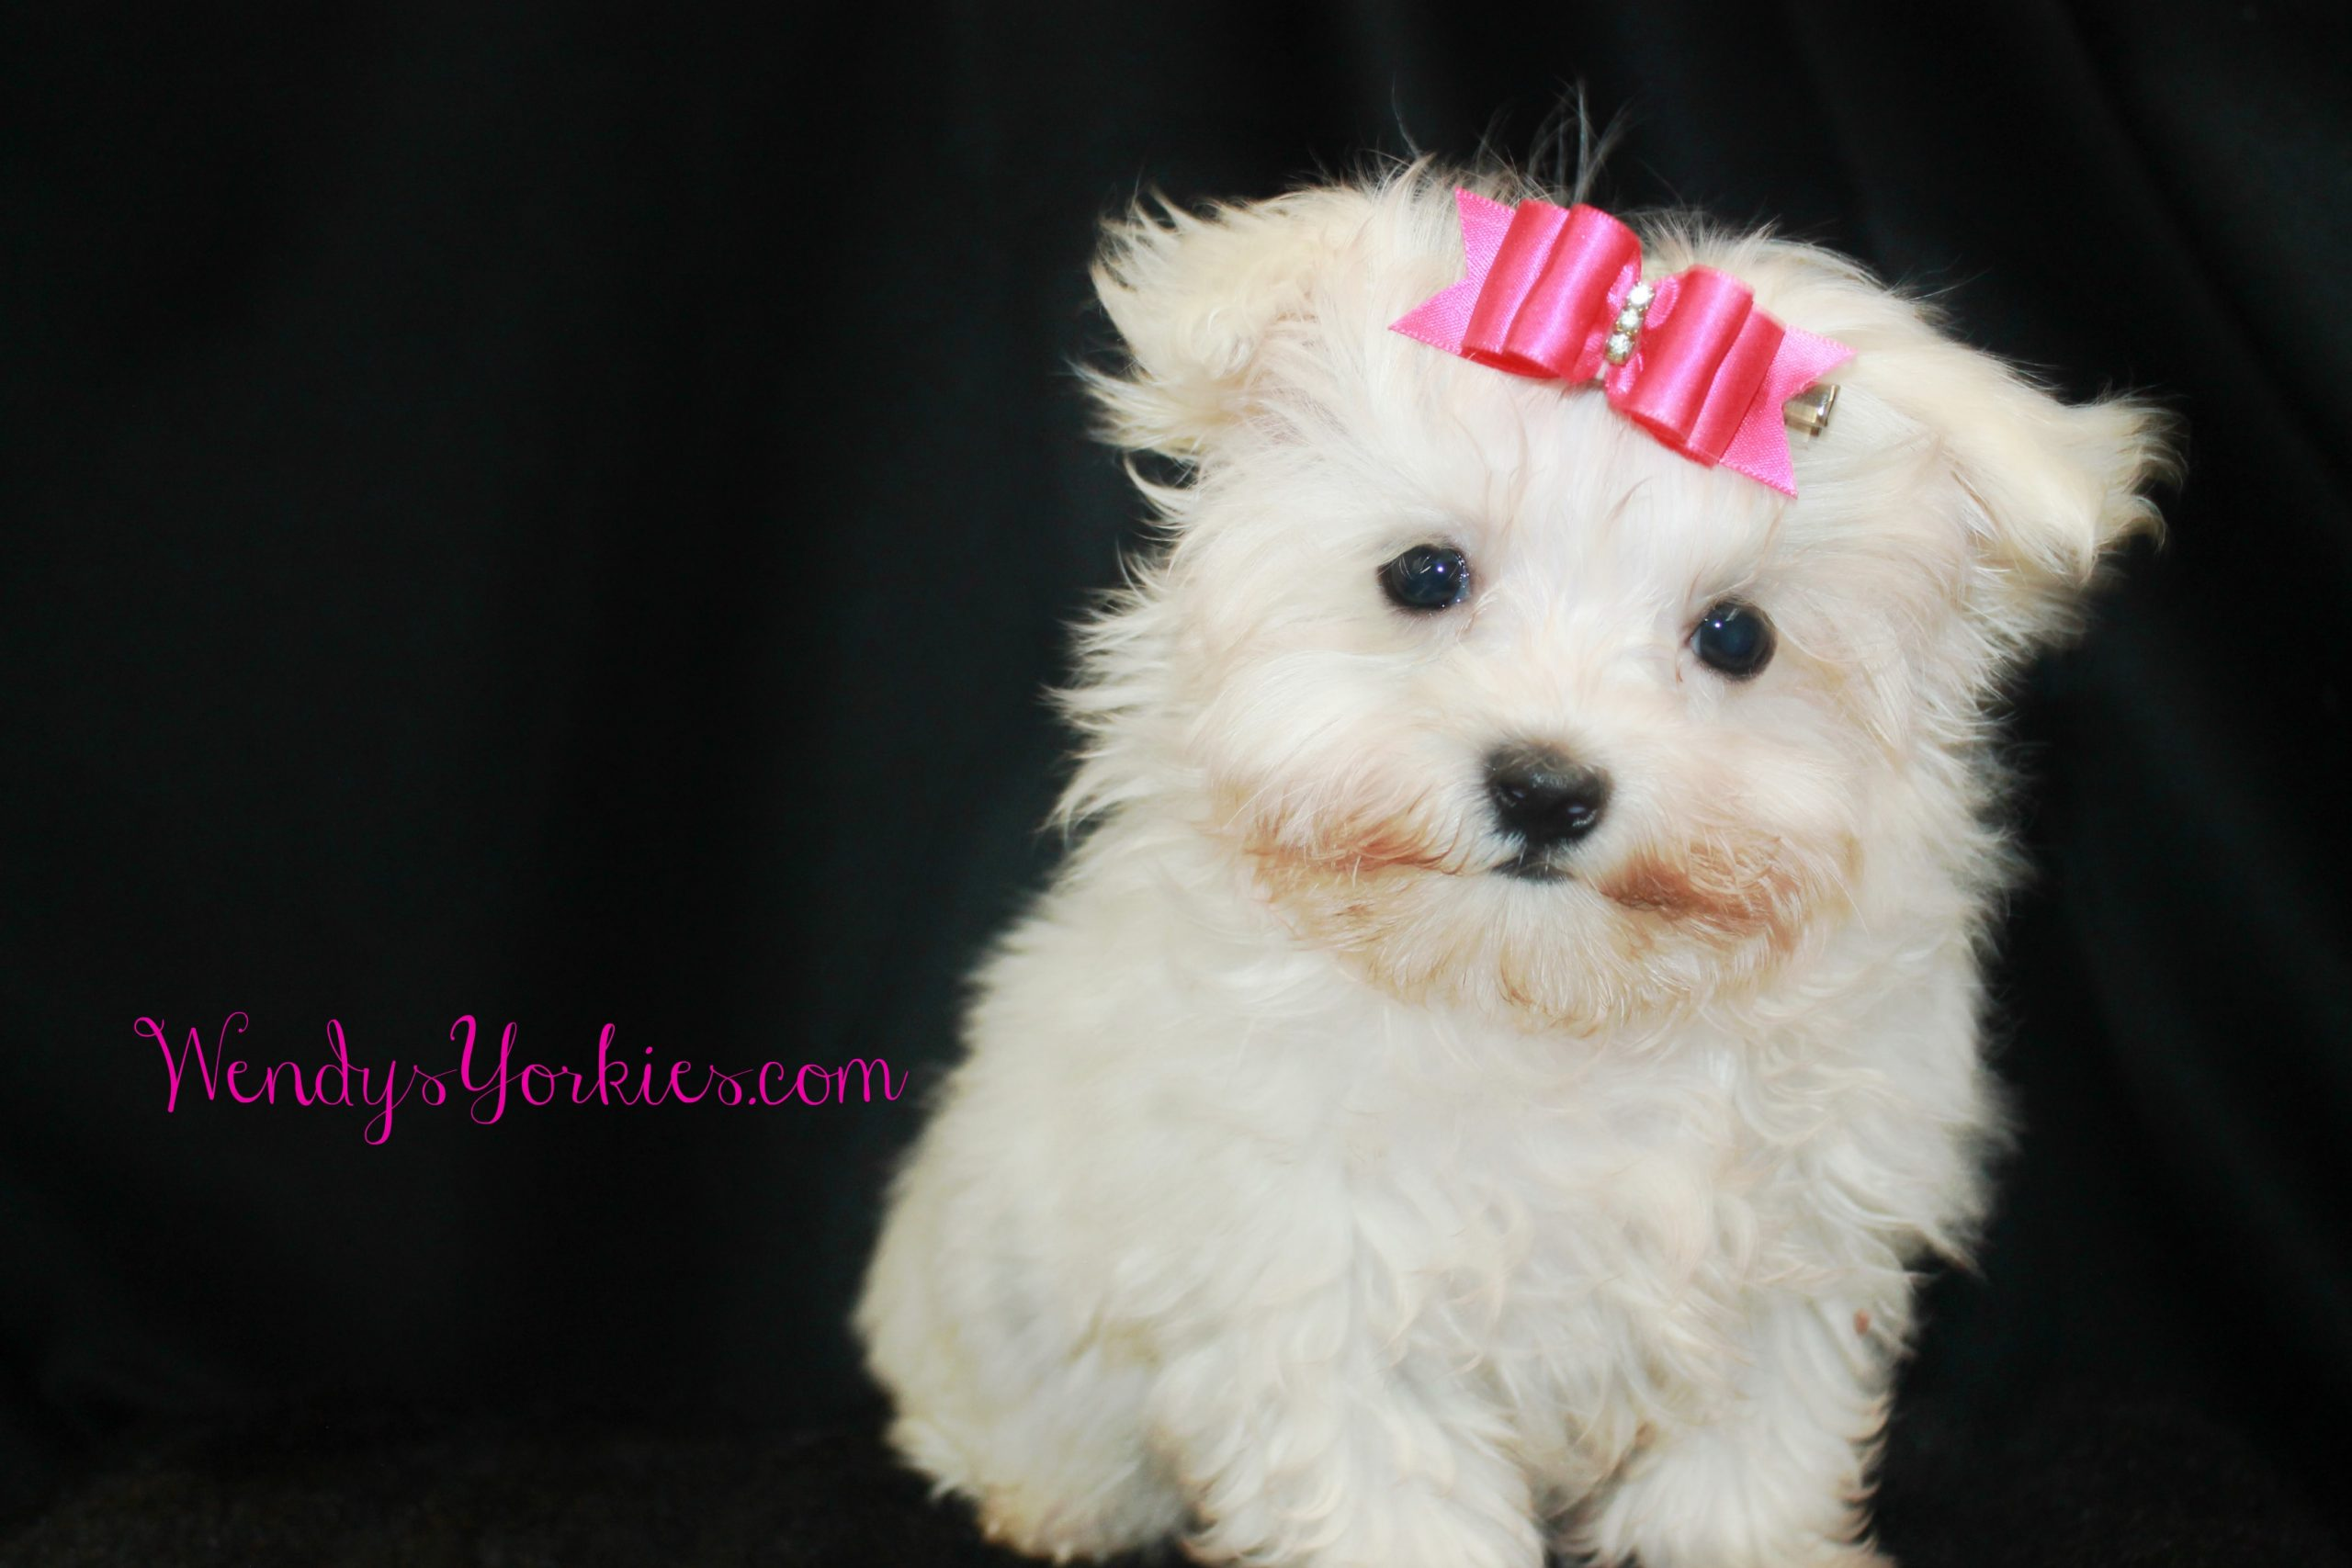 Tiny Maltese puppy for sale, Snowy, WendysYorkies.com